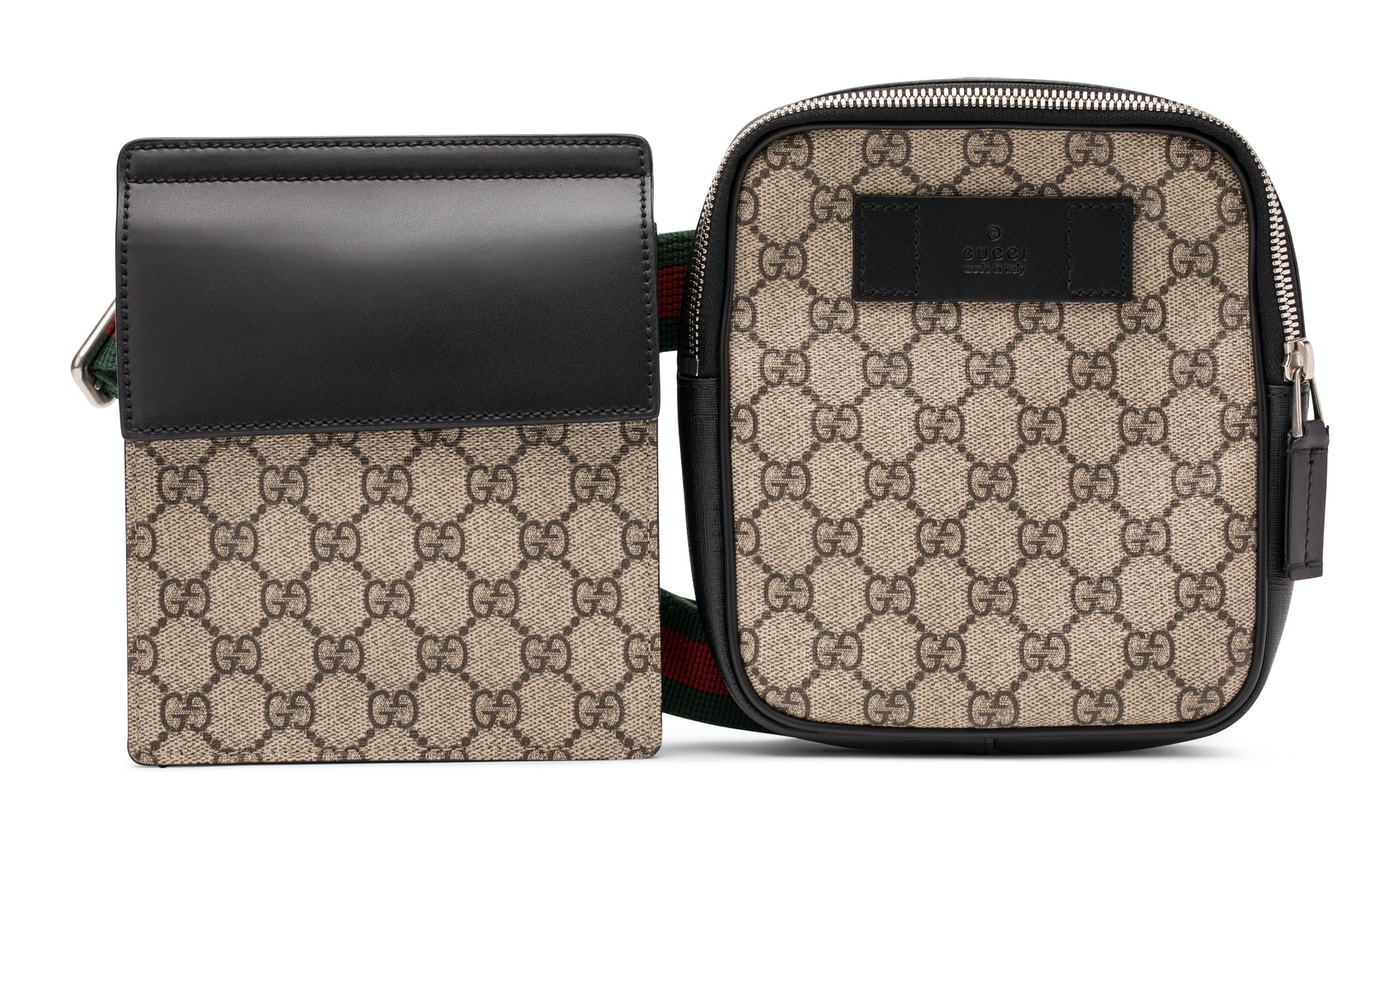 996ae3253 Gucci Belt Bag GG Supreme Web Waist Strap Black/Beige